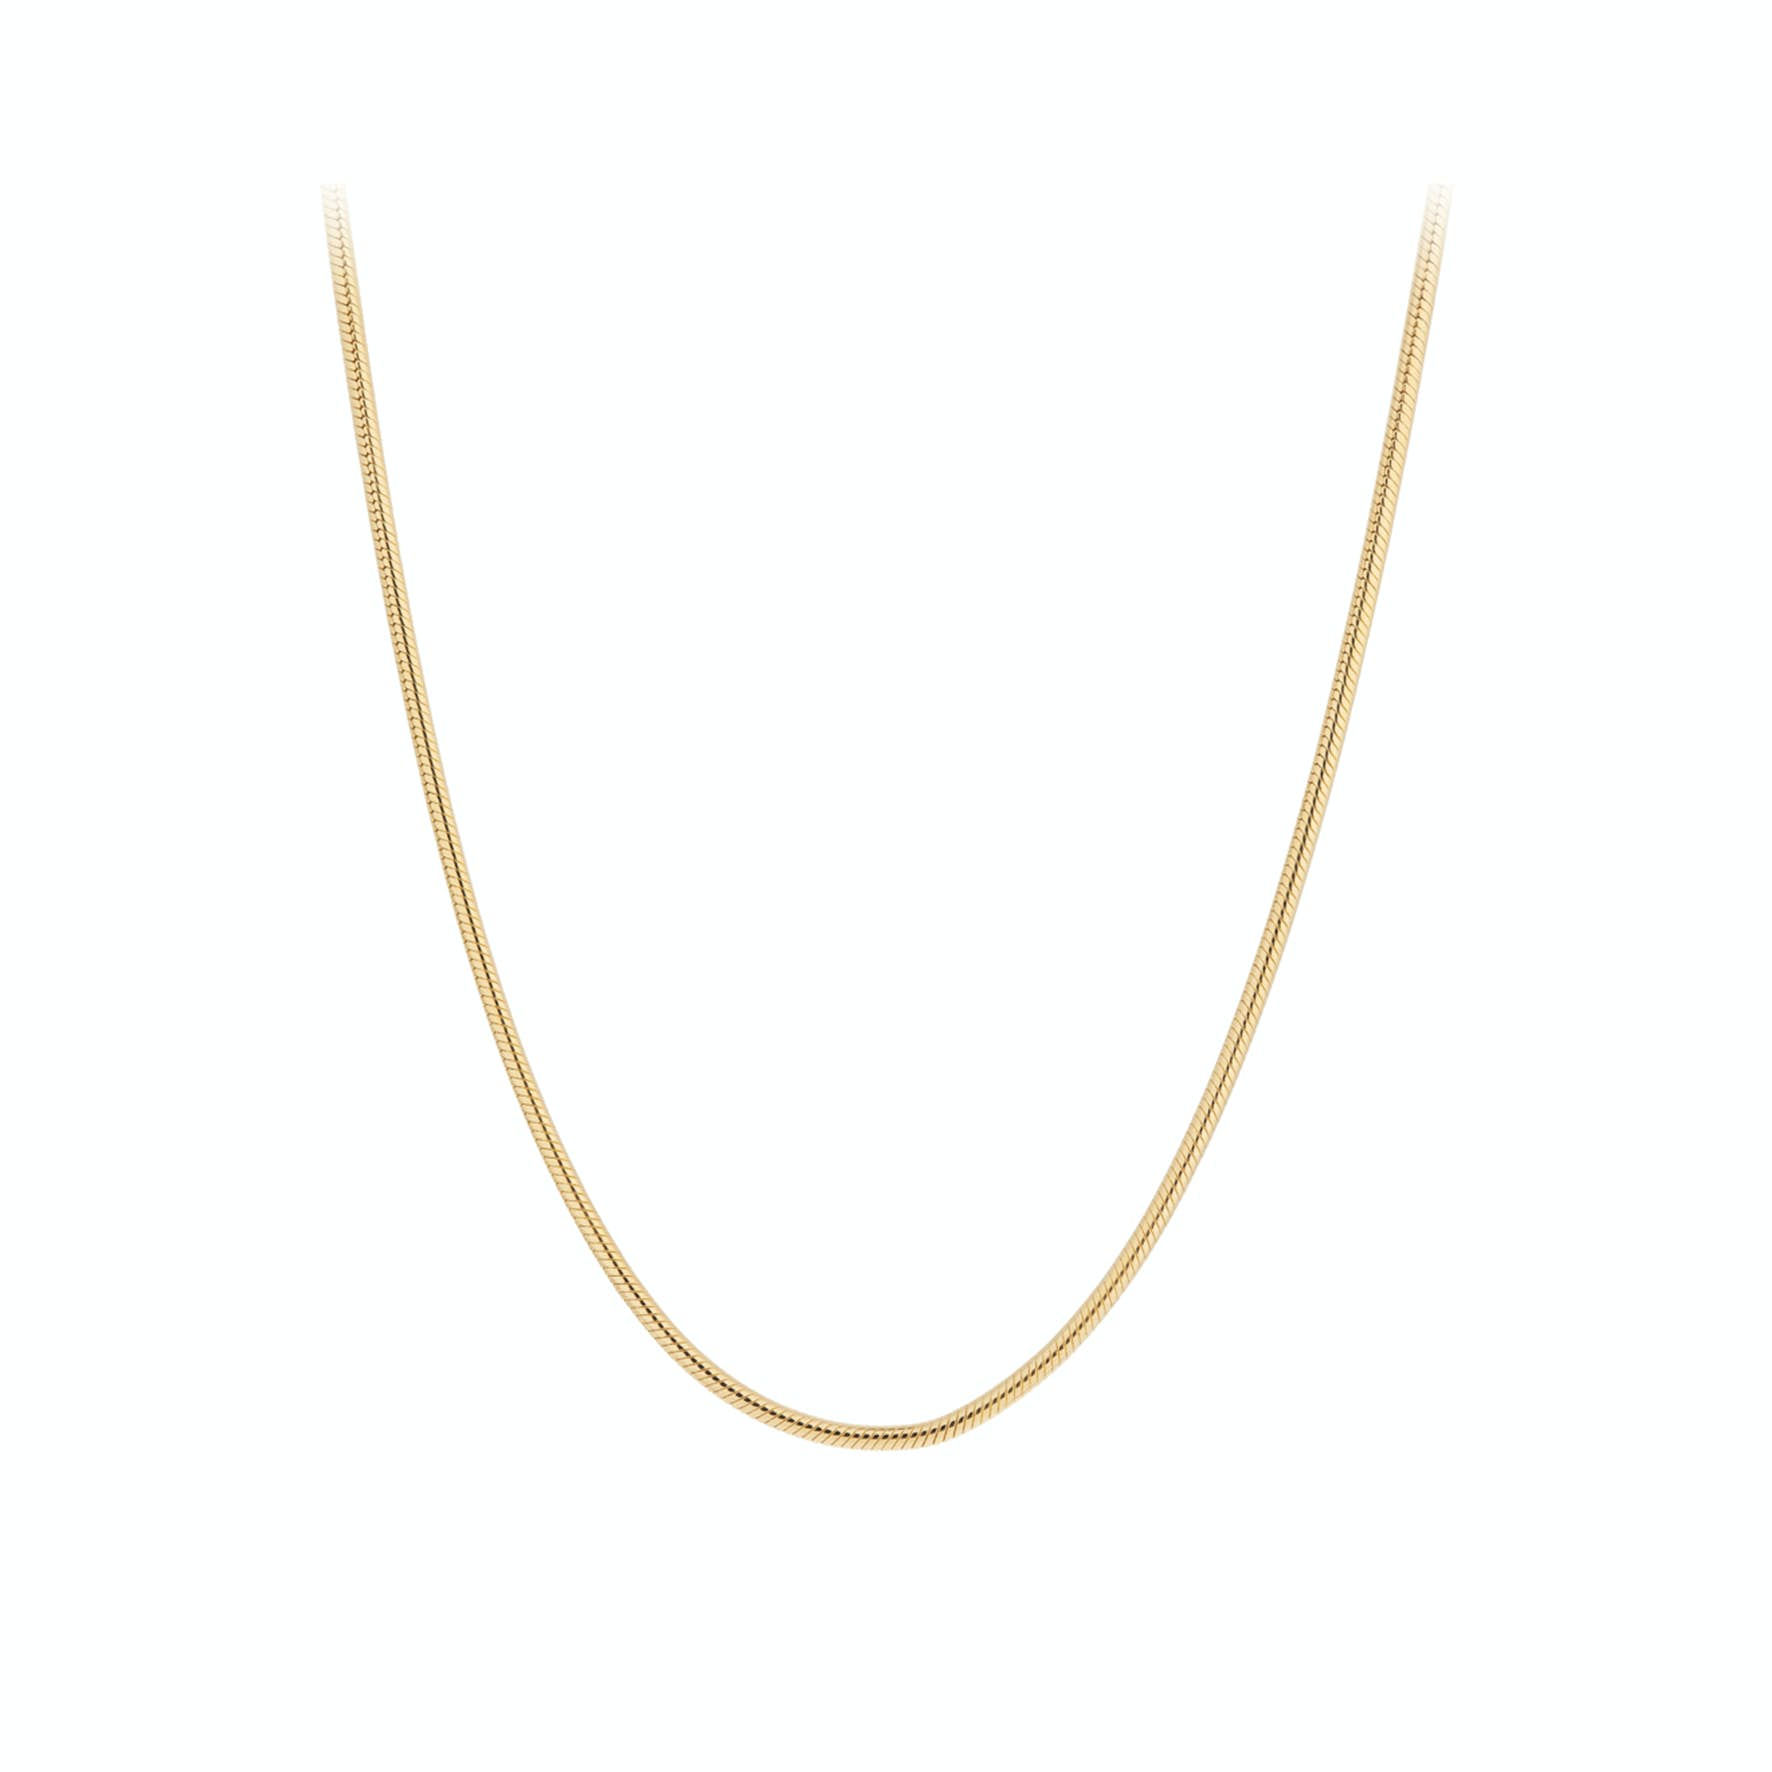 Ella Necklace from Pernille Corydon in Goldplated-Silver Sterling 925